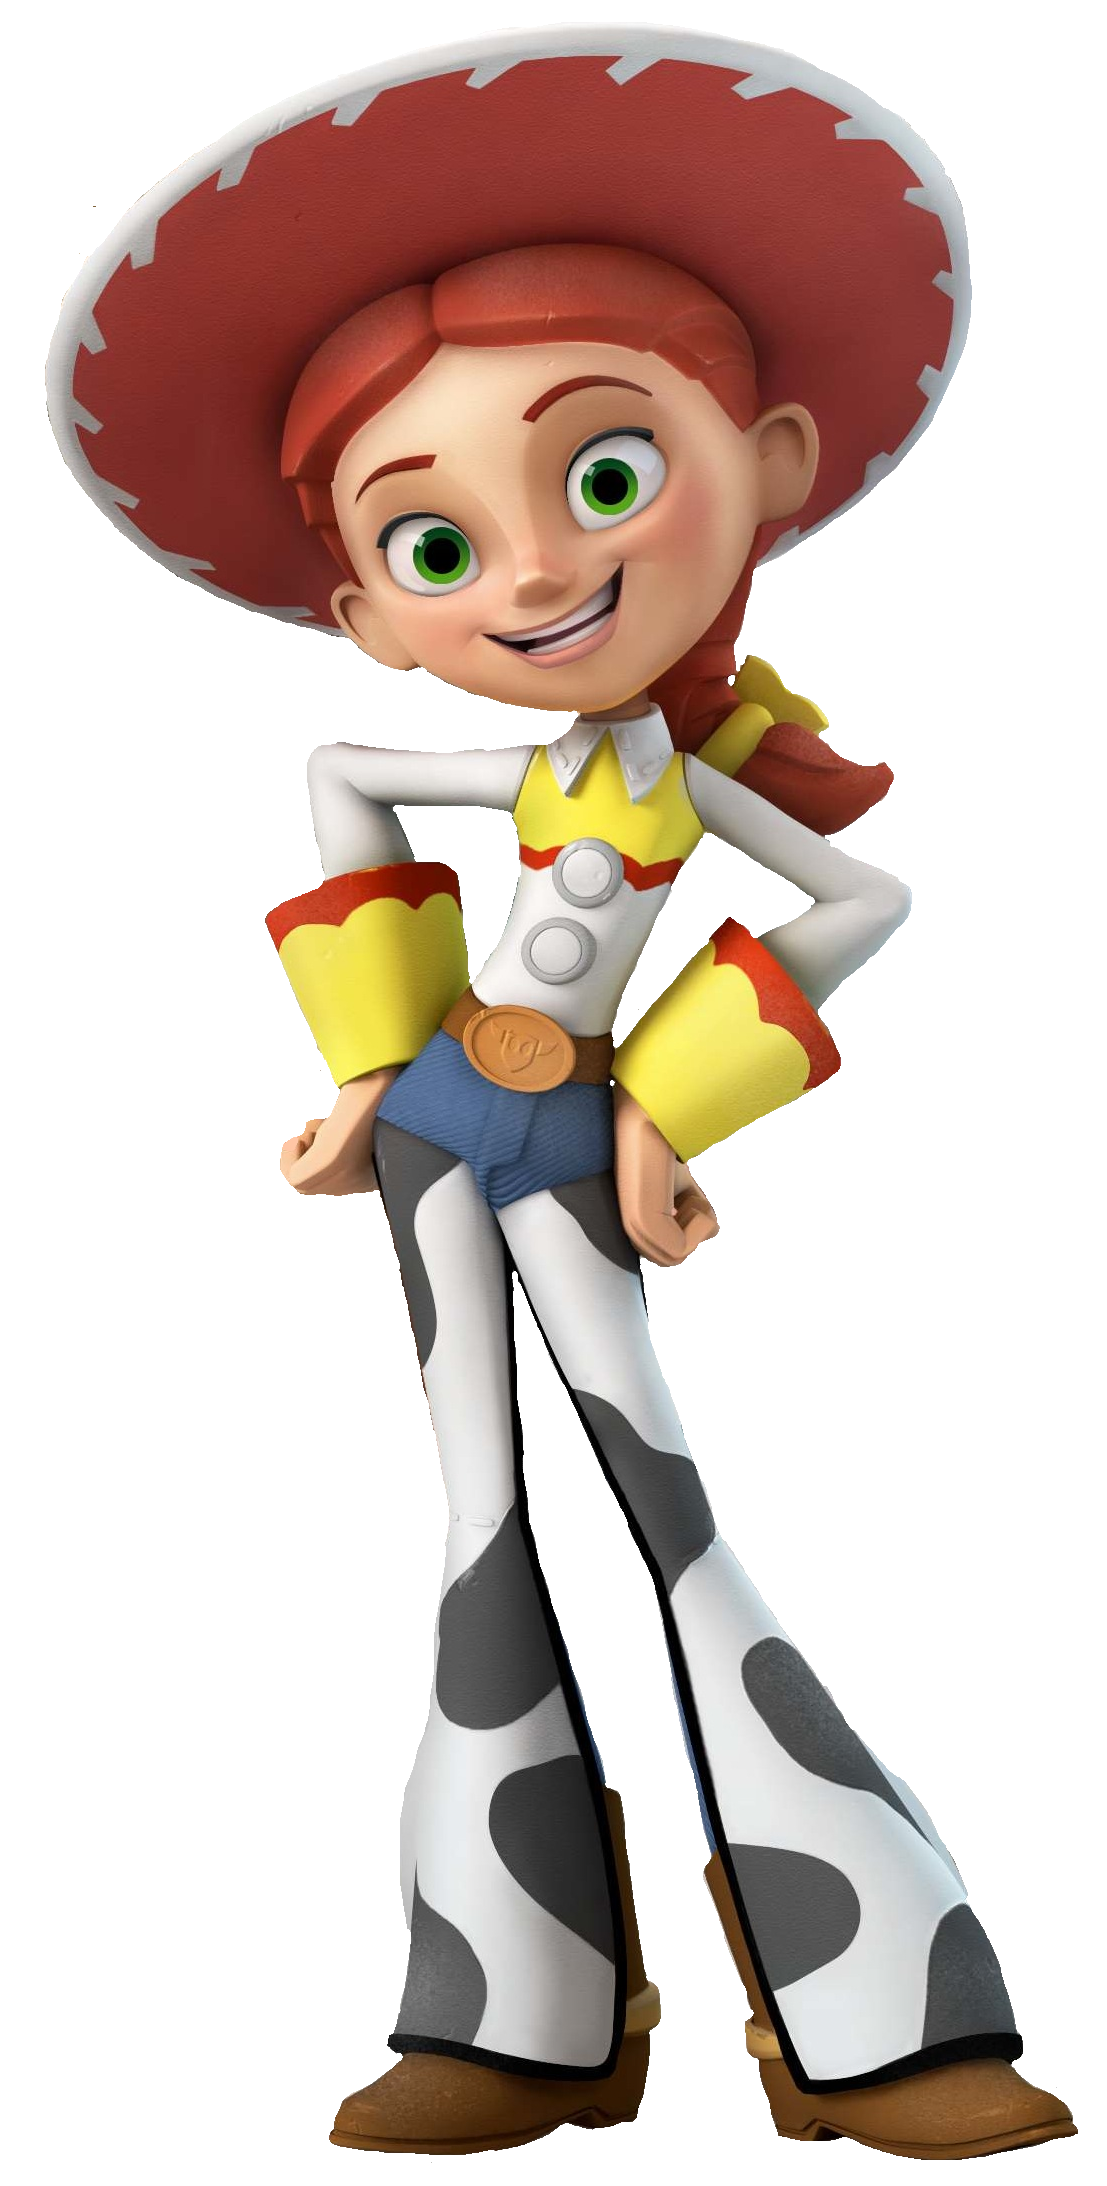 Download Toy Story Jessie PNG File.